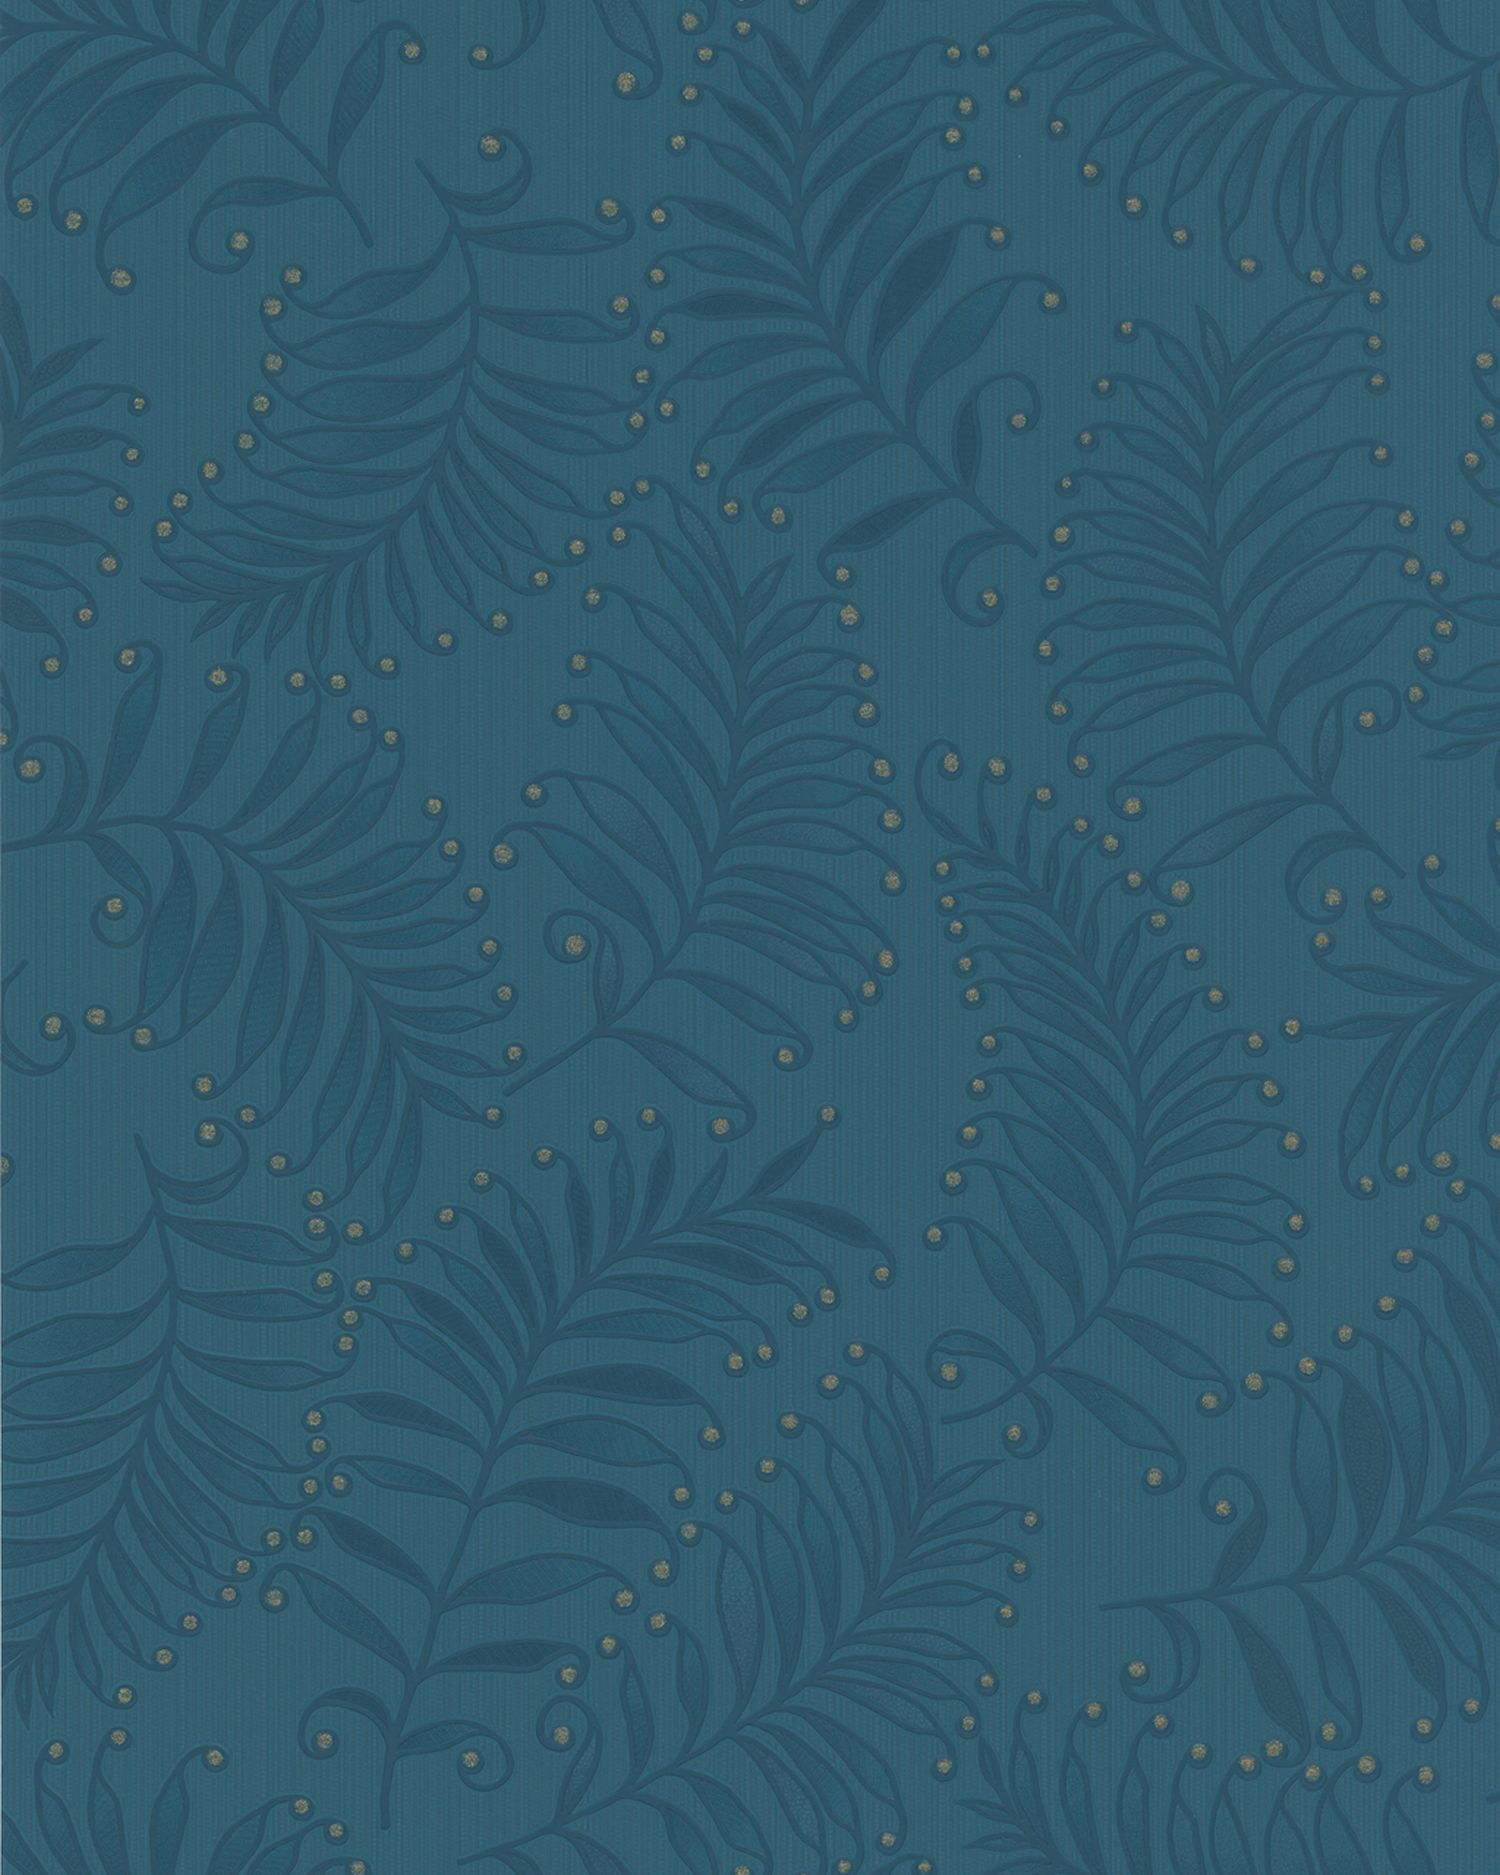 Graham & Brown Blue teal fern wallpaper - House of Fraser